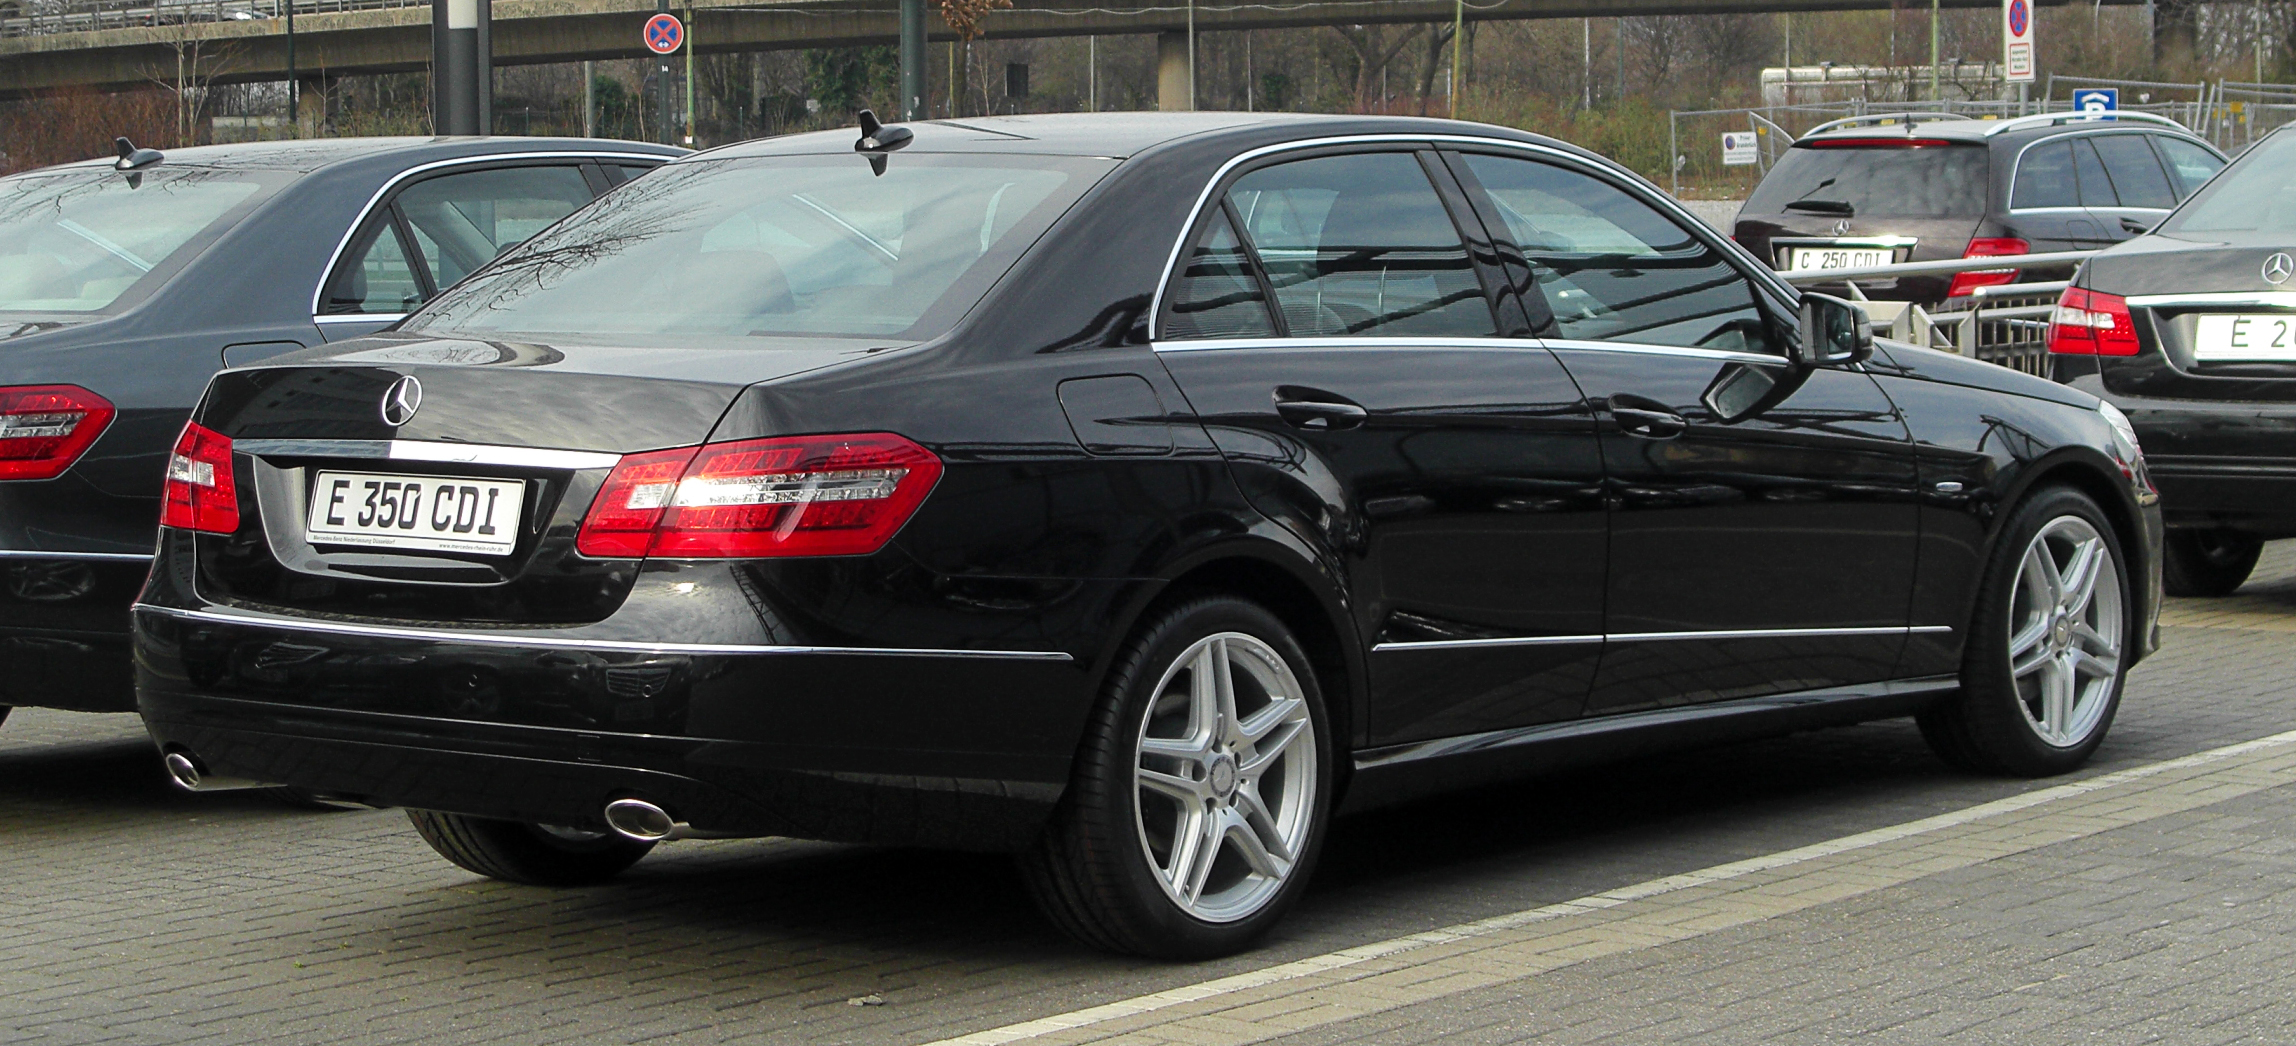 mercedes benz e 350 cdi blueefficiency photos and comments. Black Bedroom Furniture Sets. Home Design Ideas